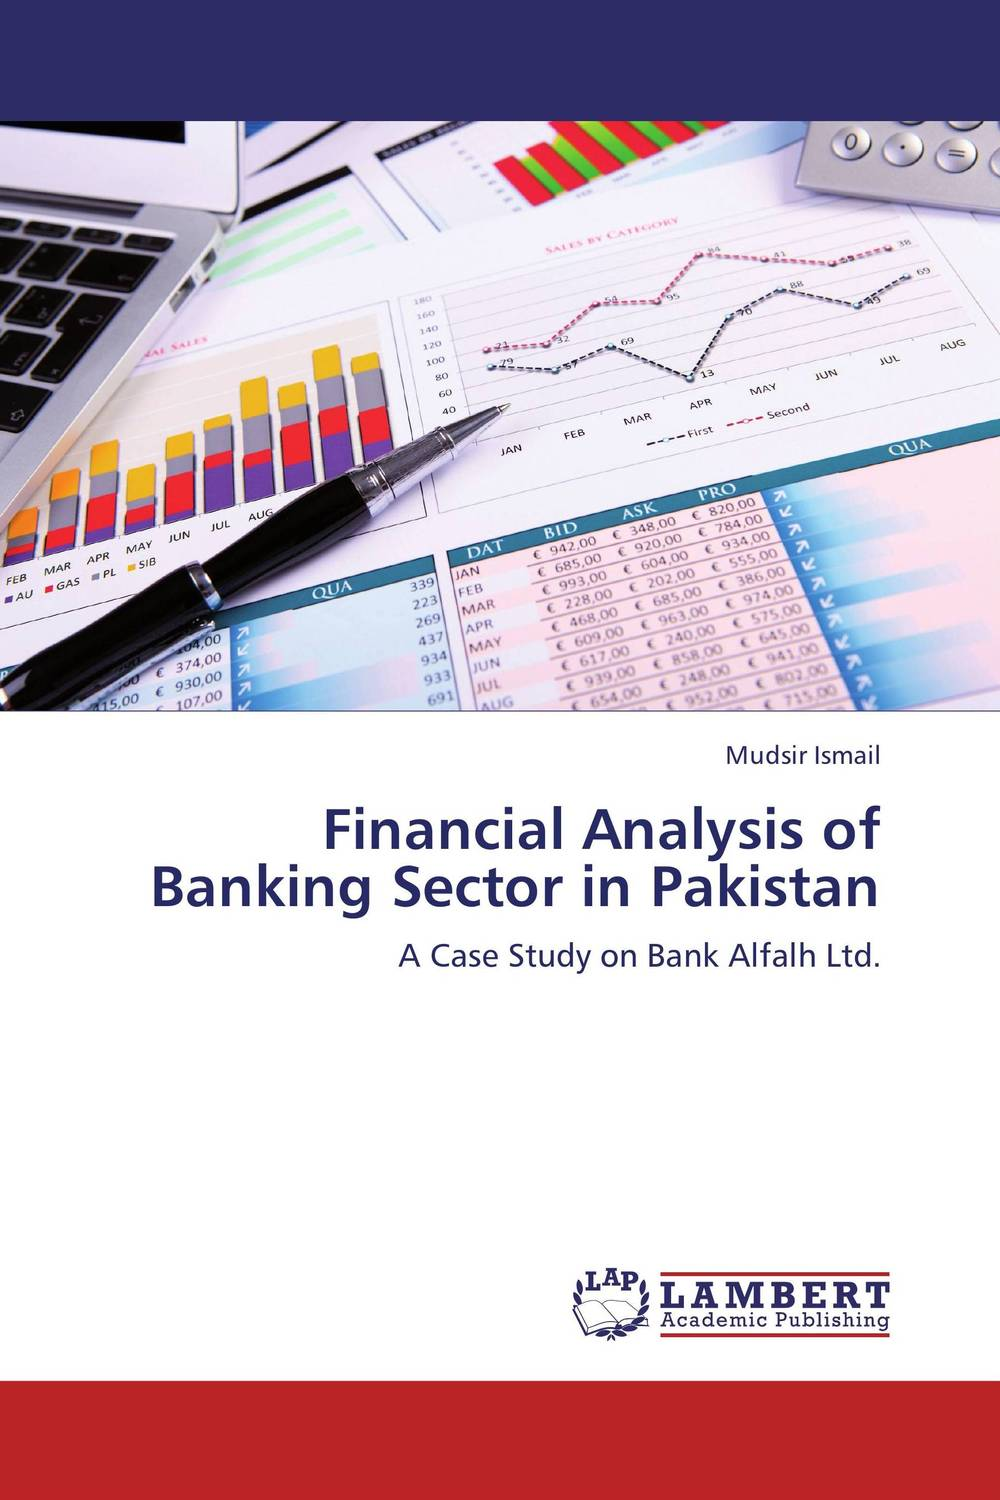 Financial Analysis of Banking Sector in Pakistan financial appraisal and comparative analysis of icici bank ltd